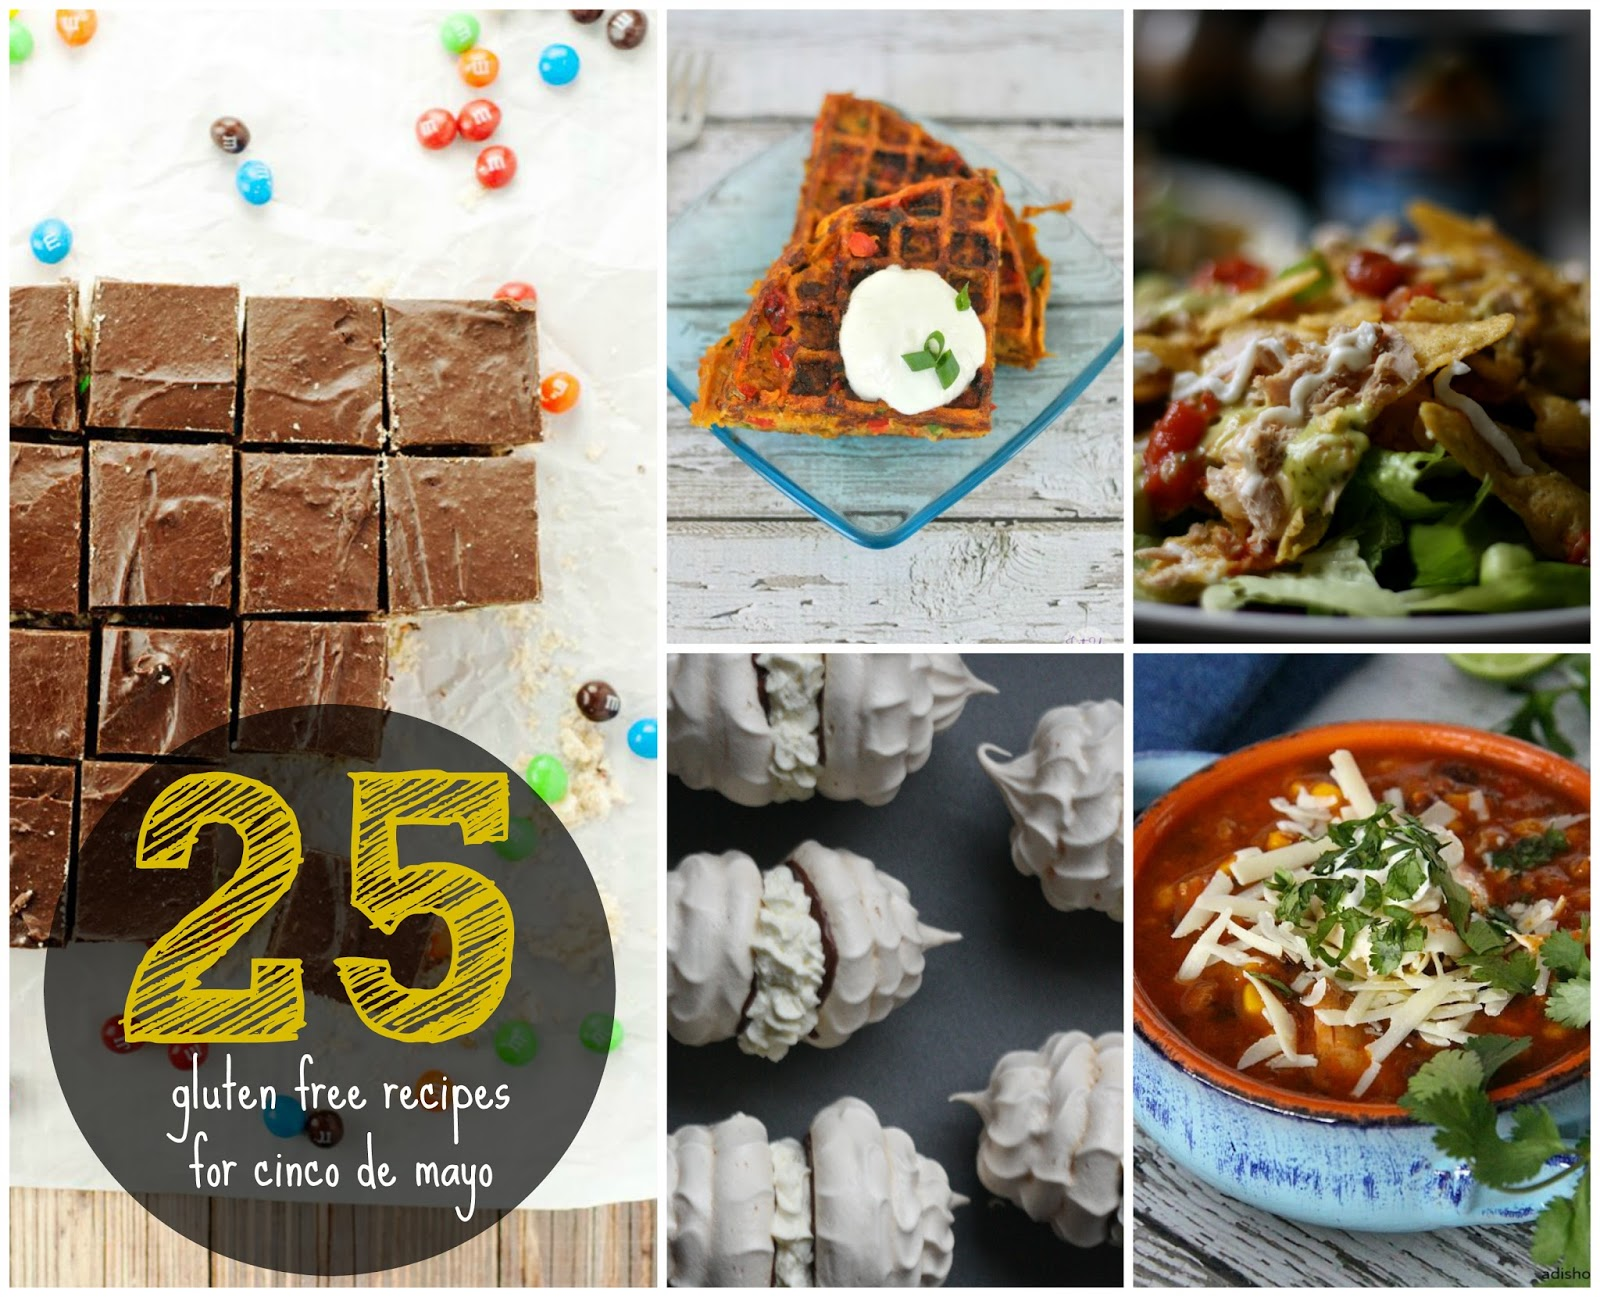 25 Gluten Free Cinco de Mayo Recipes from Anyonita-nibbles.co.uk